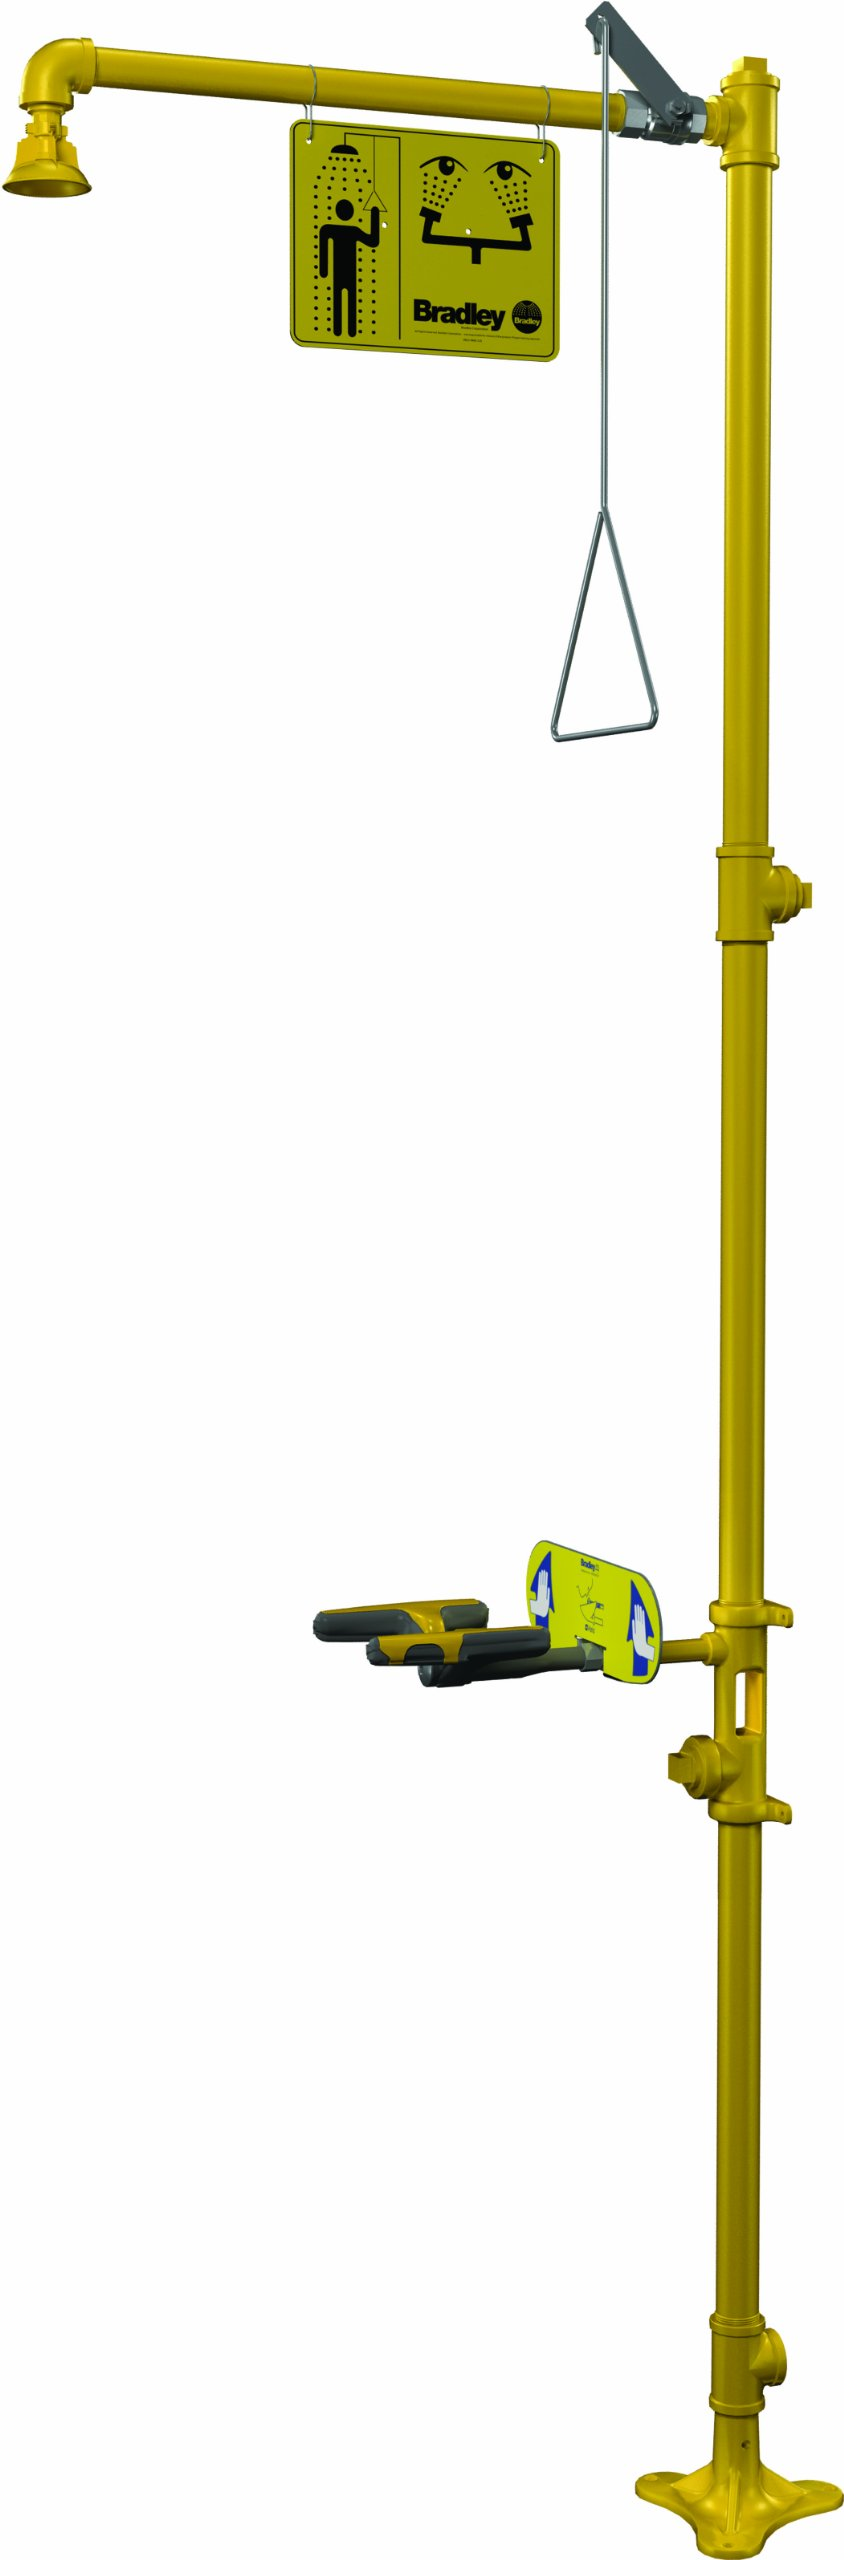 Bradley S19-310GG Galvanized Steel 3 Spray Head Combination Drench Showers and Eye/Face Wash Unit with Plastic Showerhead, 20 GPM, 9'' Width x 88-1/2'' Height x 25-3/8'' Depth, Yellow